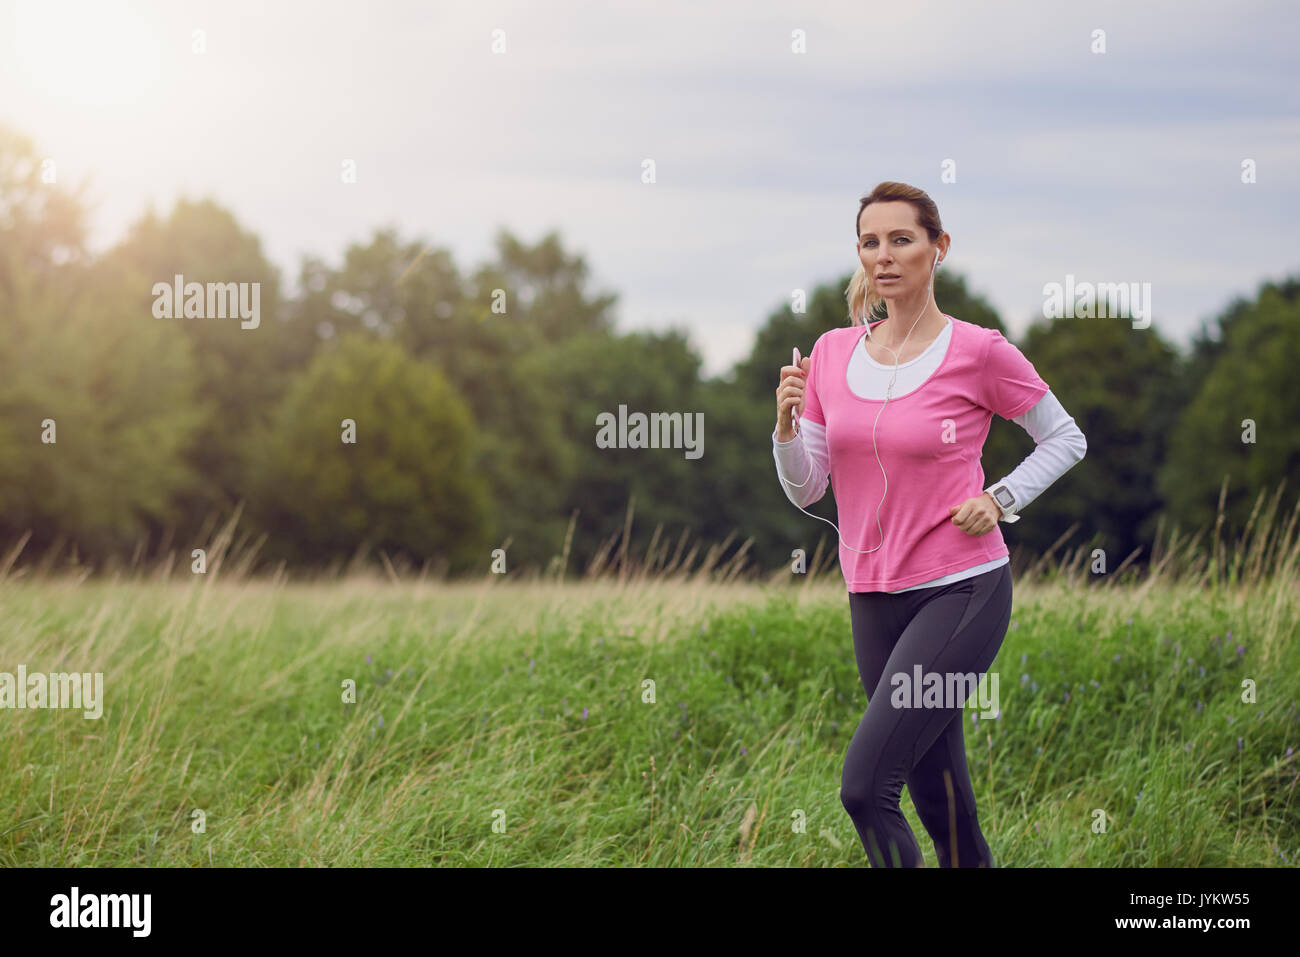 Fit middle-aged woman running through a rural field listening to music on her mobile phone using earbuds looking to the side with a happy smile in a h - Stock Image